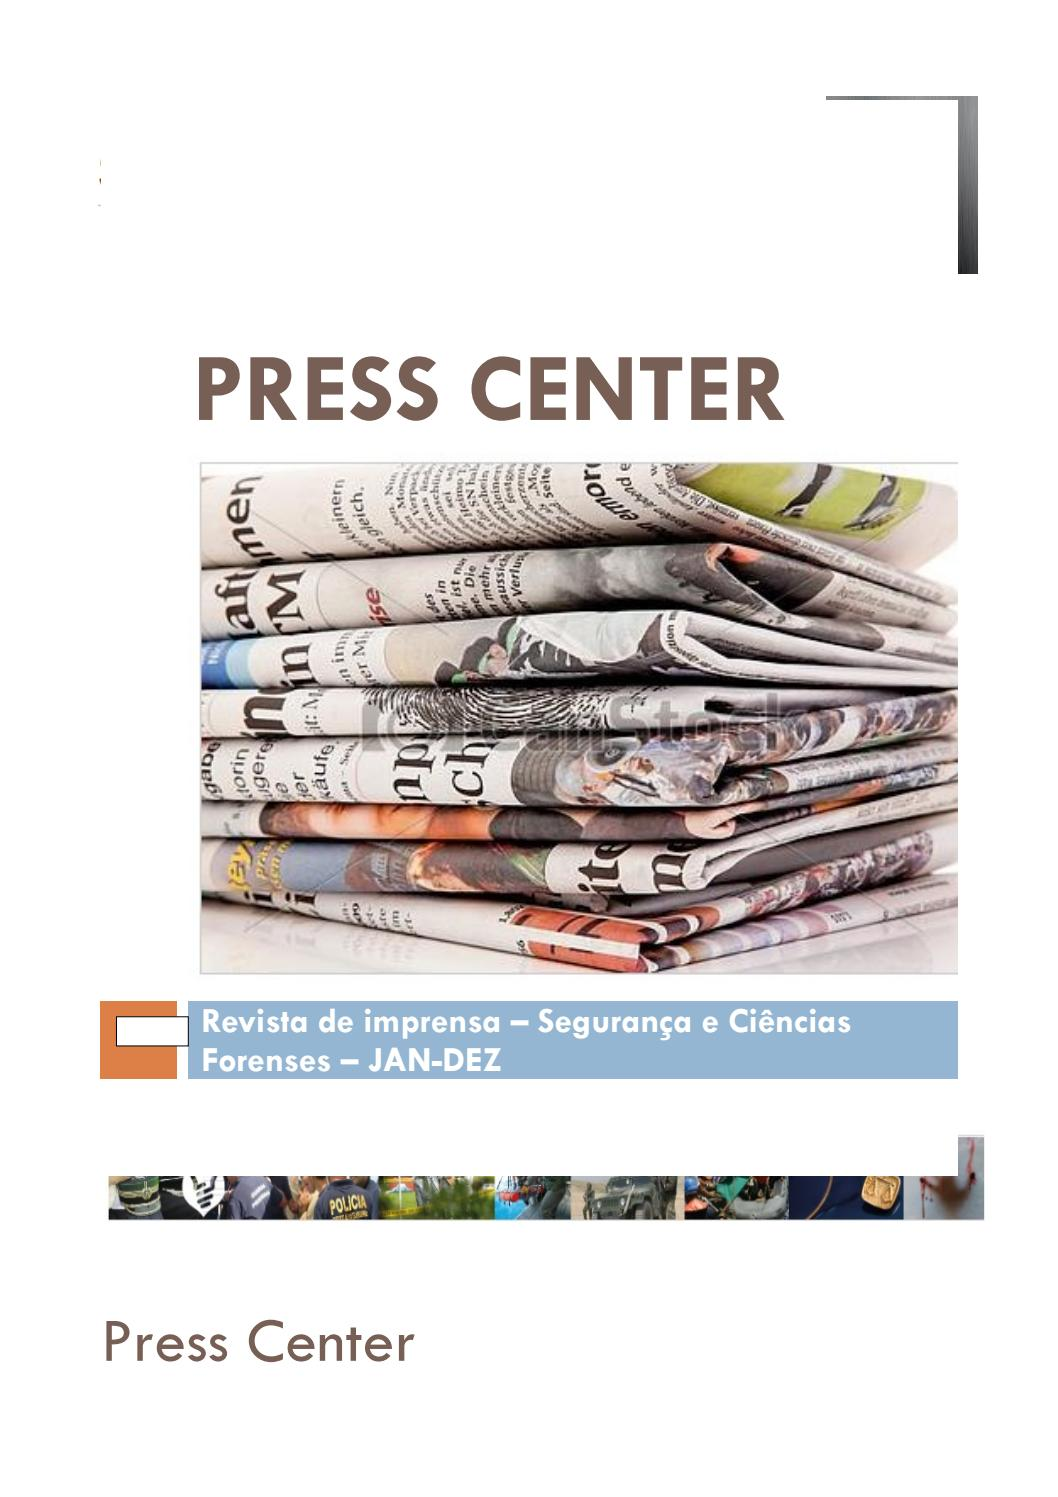 Press center jandez2016 1 by Segurança e Ciências Forenses - issuu d2fa9184cd993